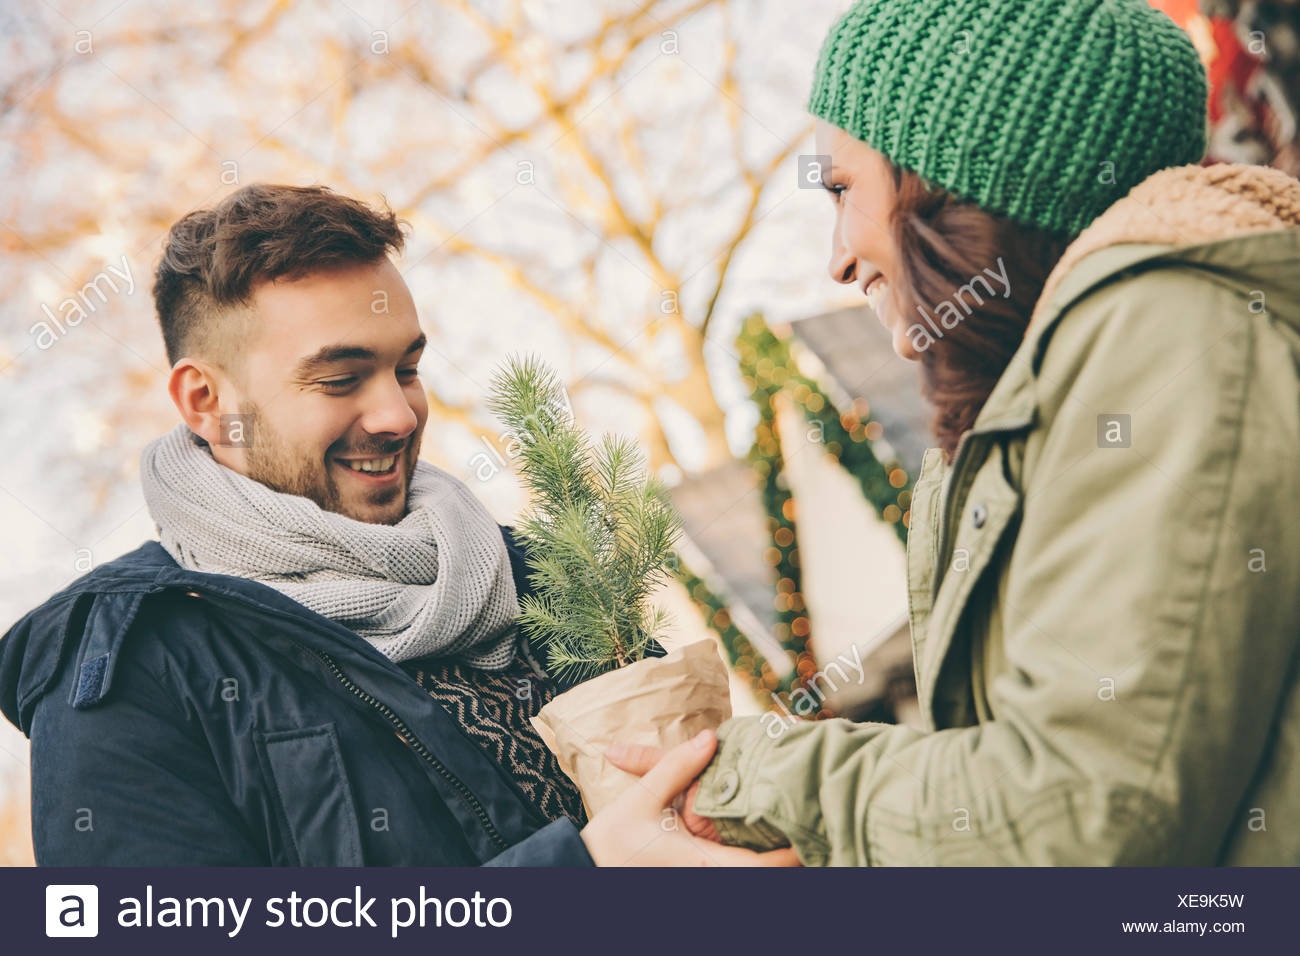 Man receiving a small tree in a pot from a woman on Christmas Market - Stock Image